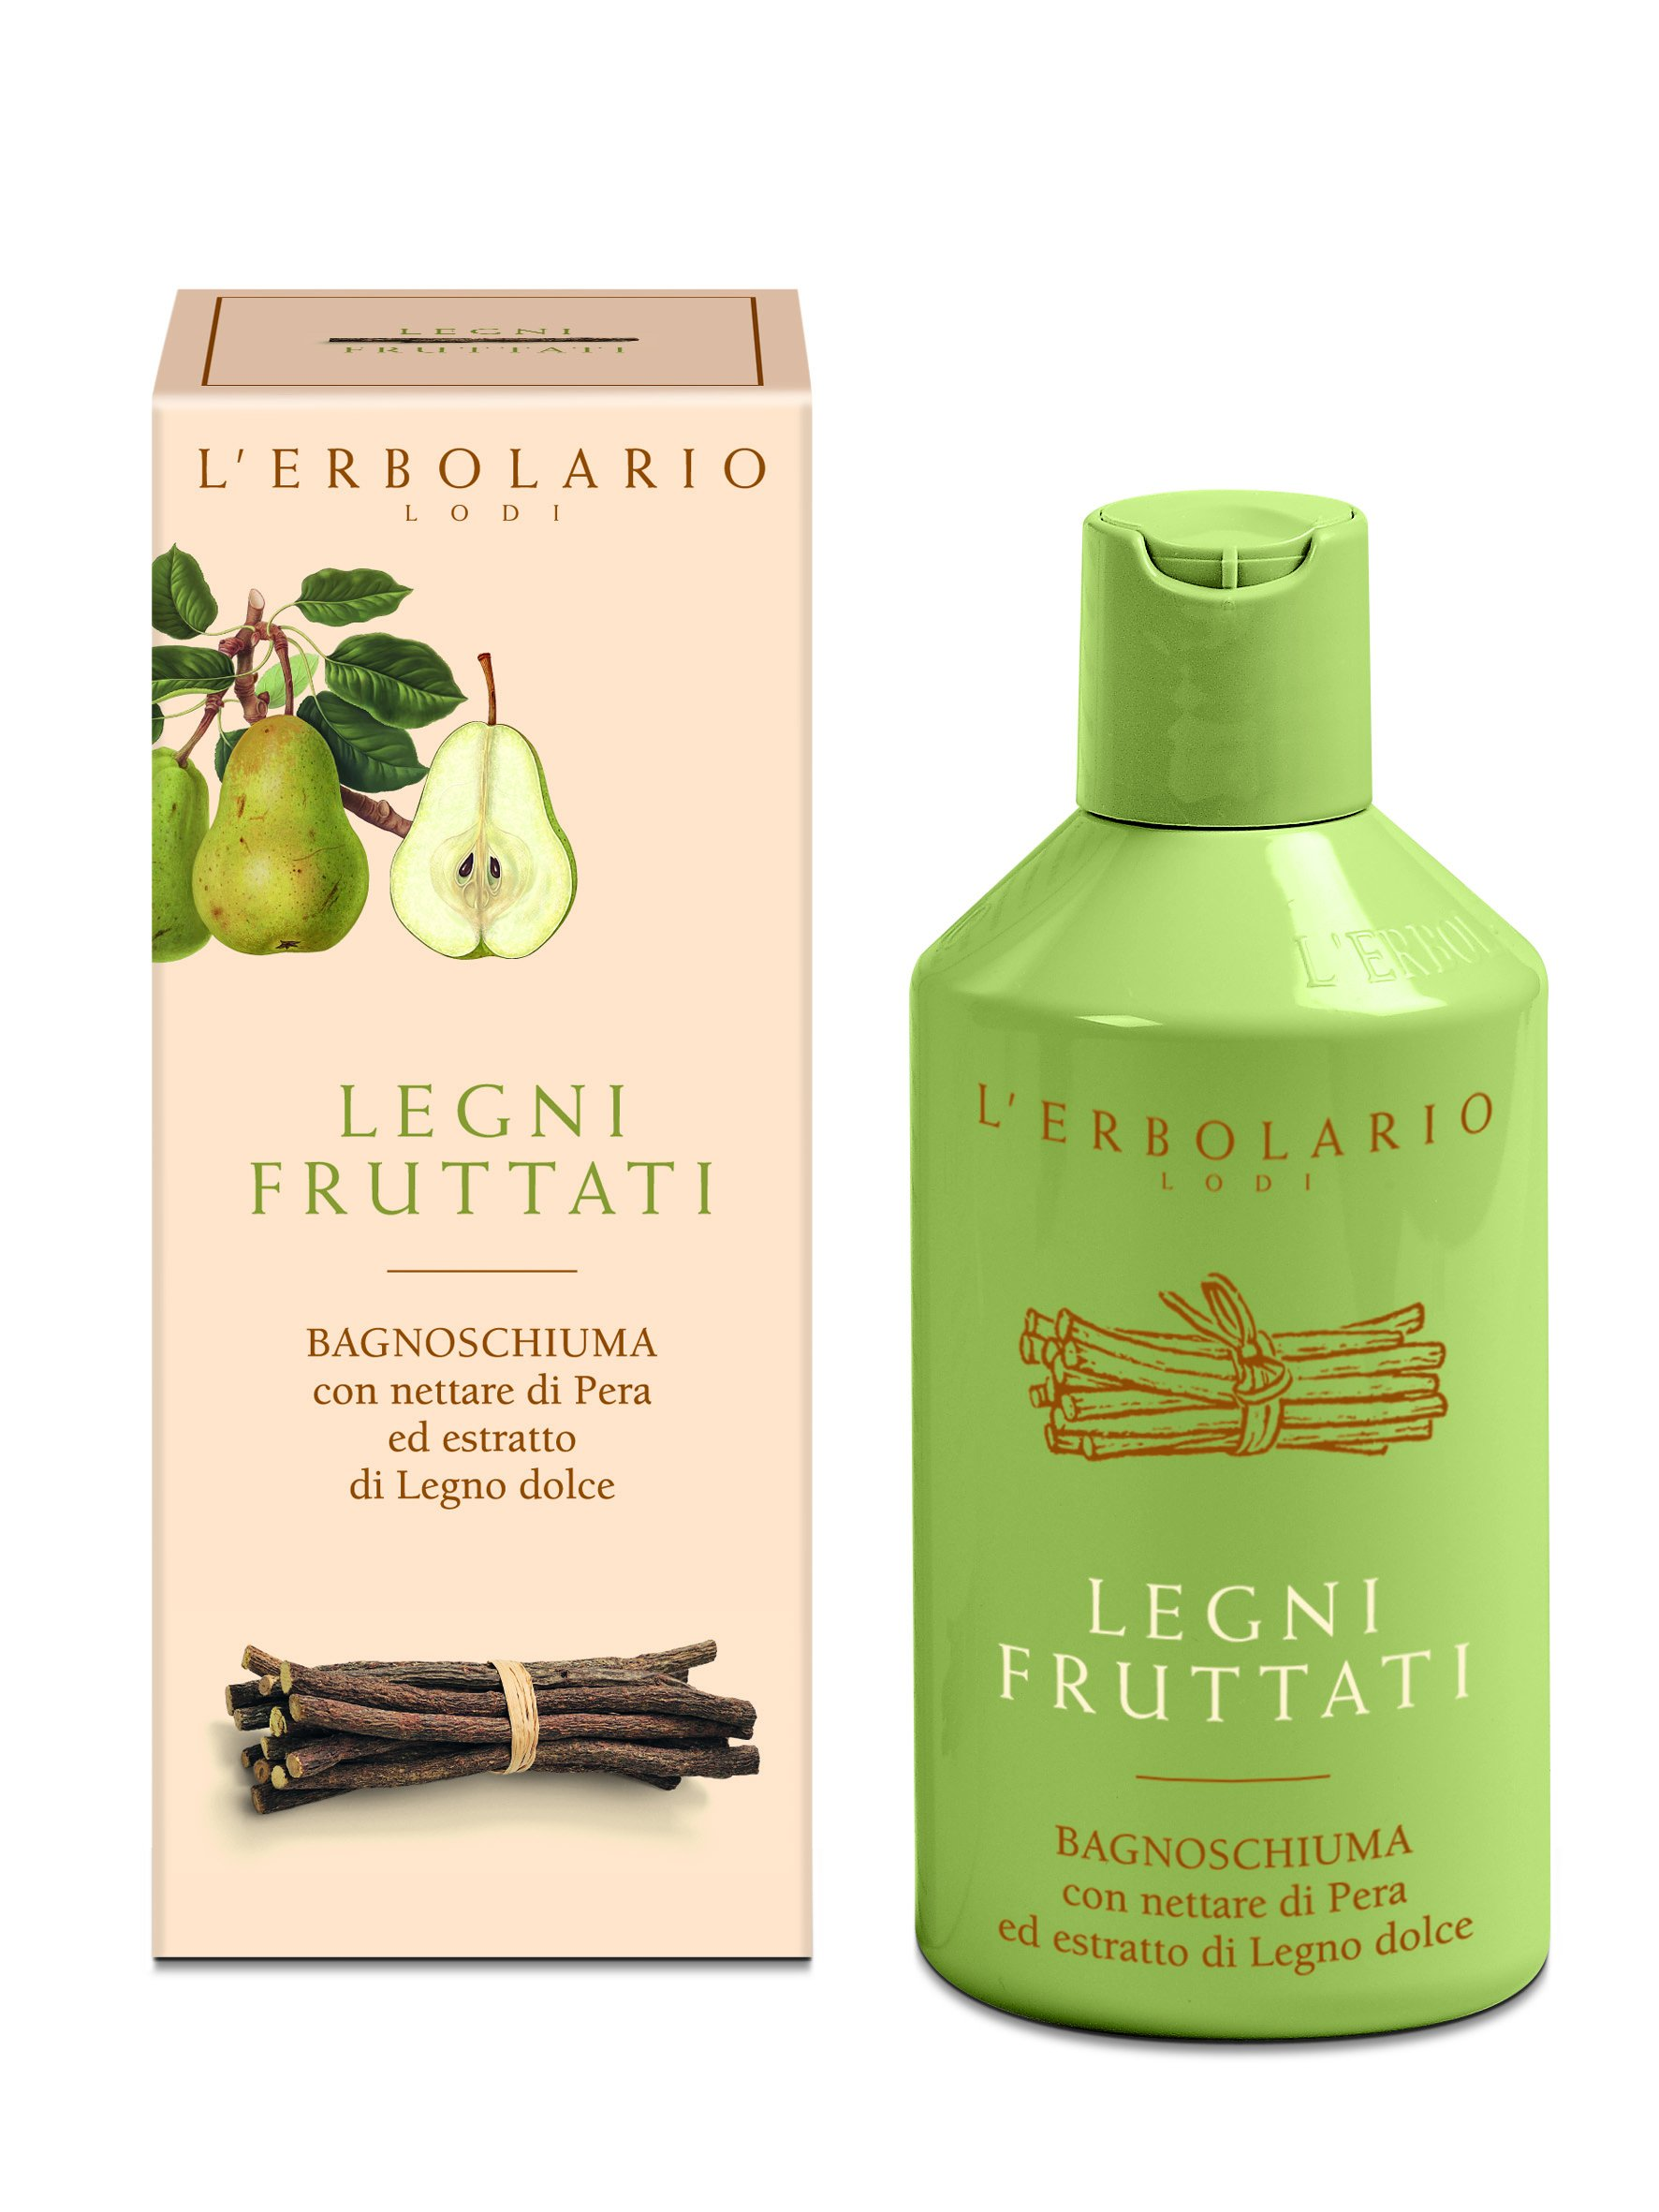 Legni Fruttati (Fruit & Woods) Bath Foam by LErbolario Lodi